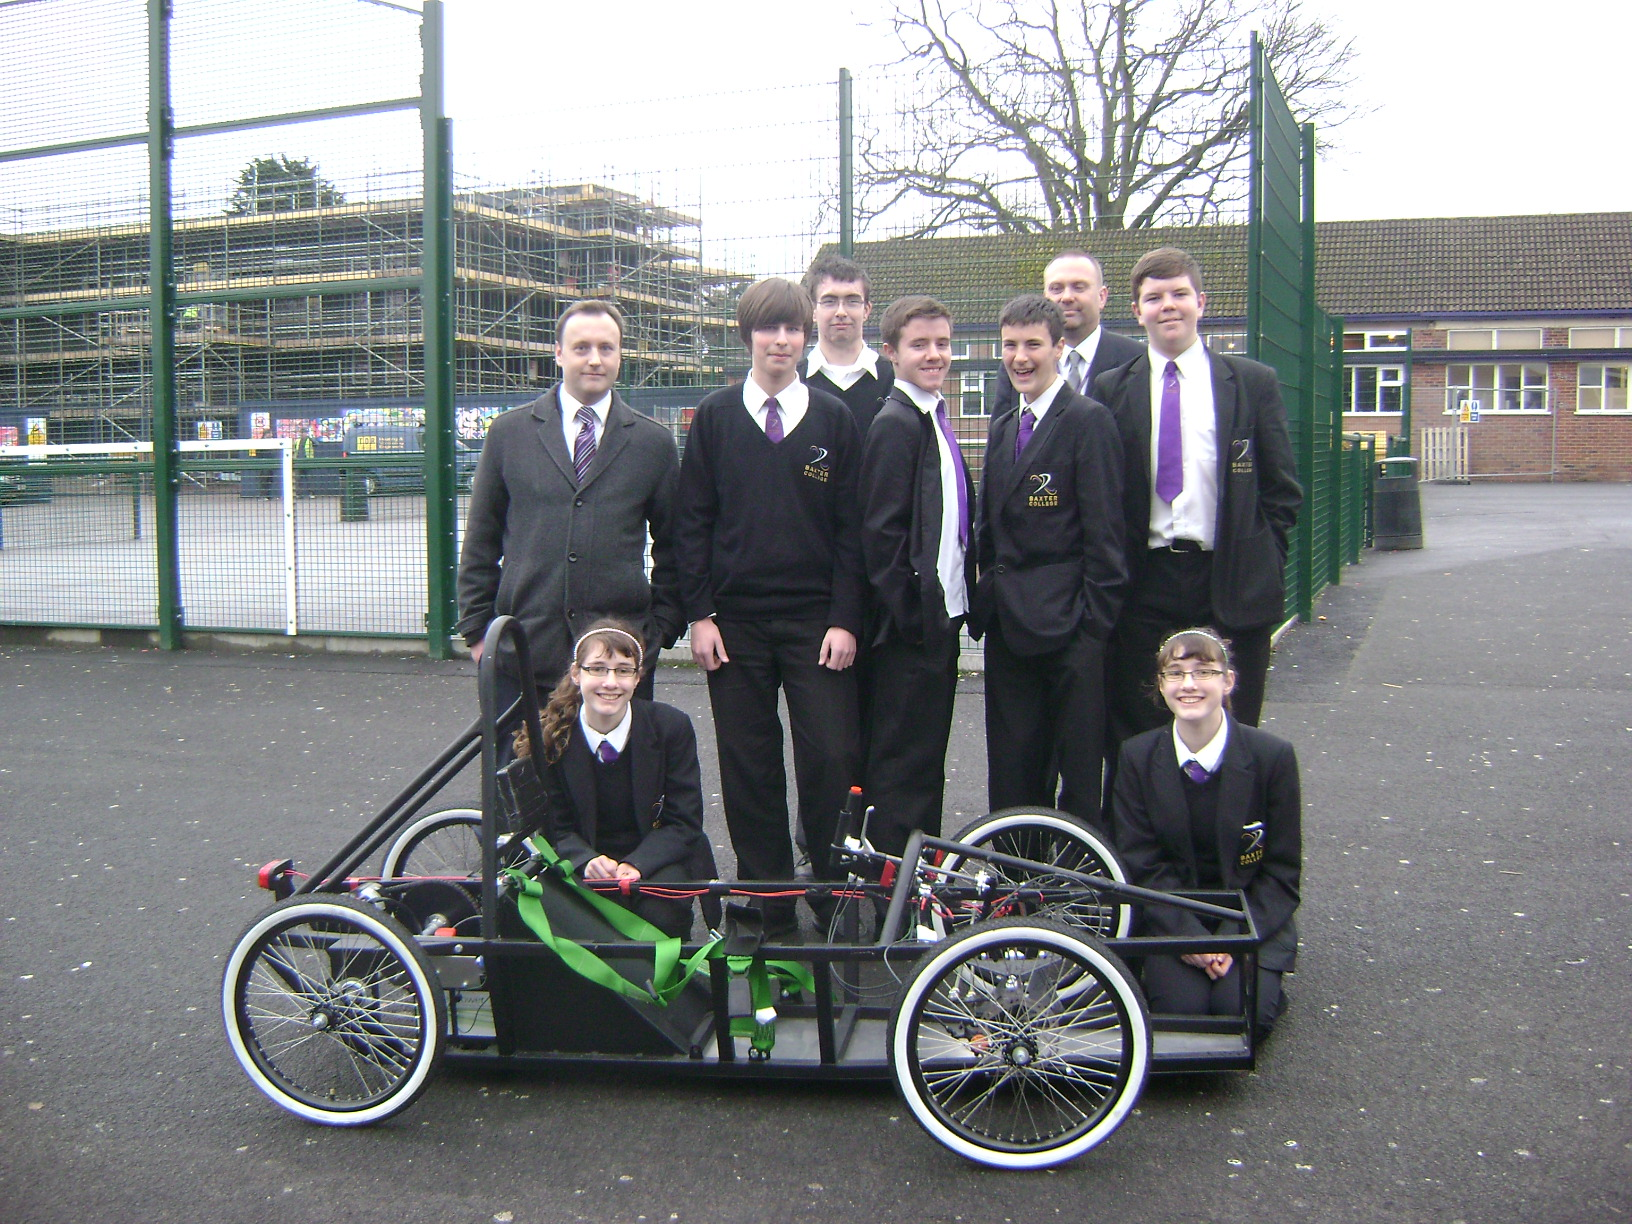 Raring to go: Teachers Michael Bullock, left, and Simon Gough, back right, with members of the Baxter College Engineering Club and their electric racing car.